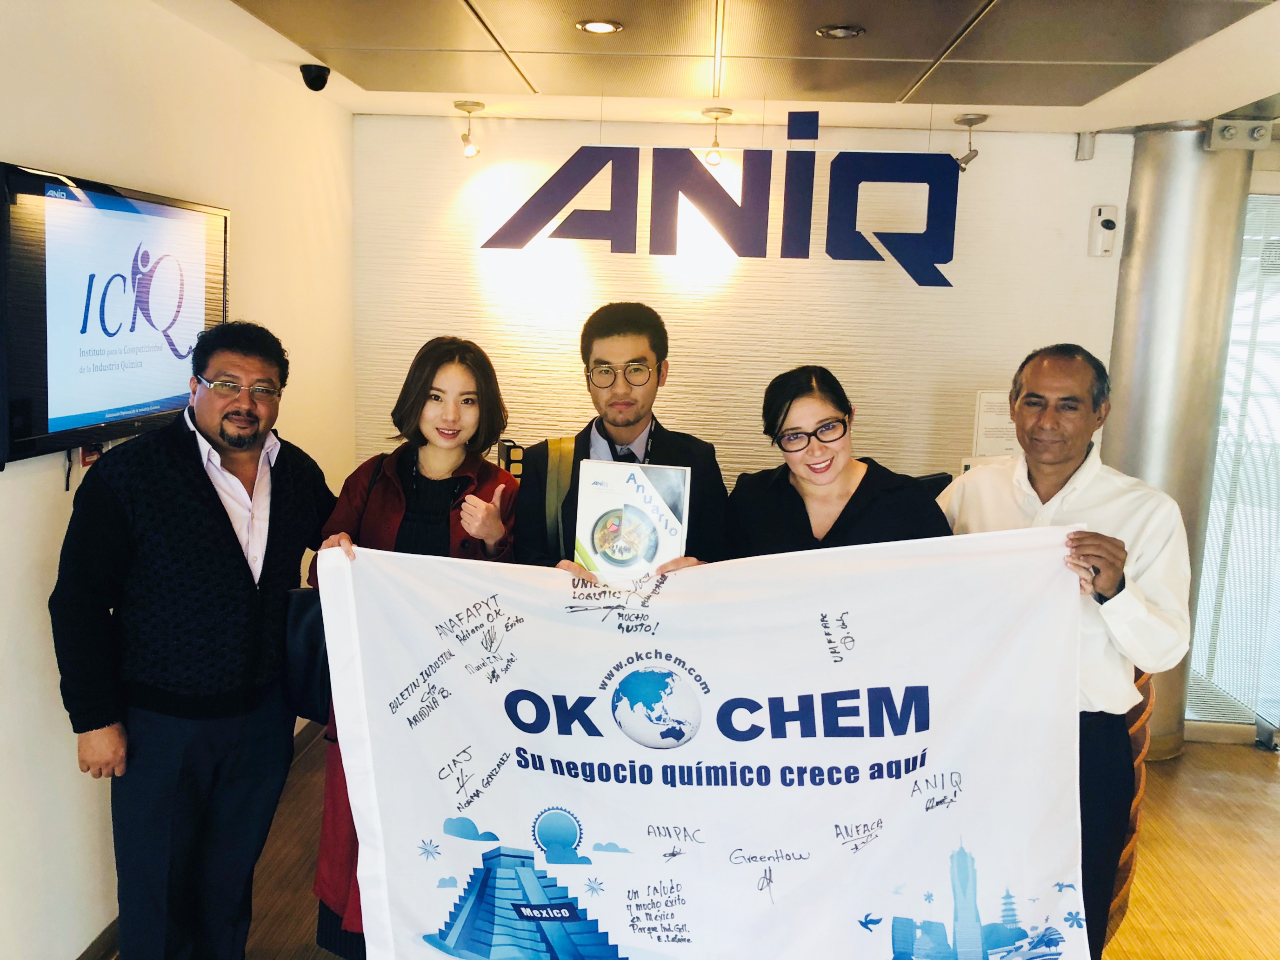 OKCHEM reaches a cooperation with the beggest Mexican chemical association